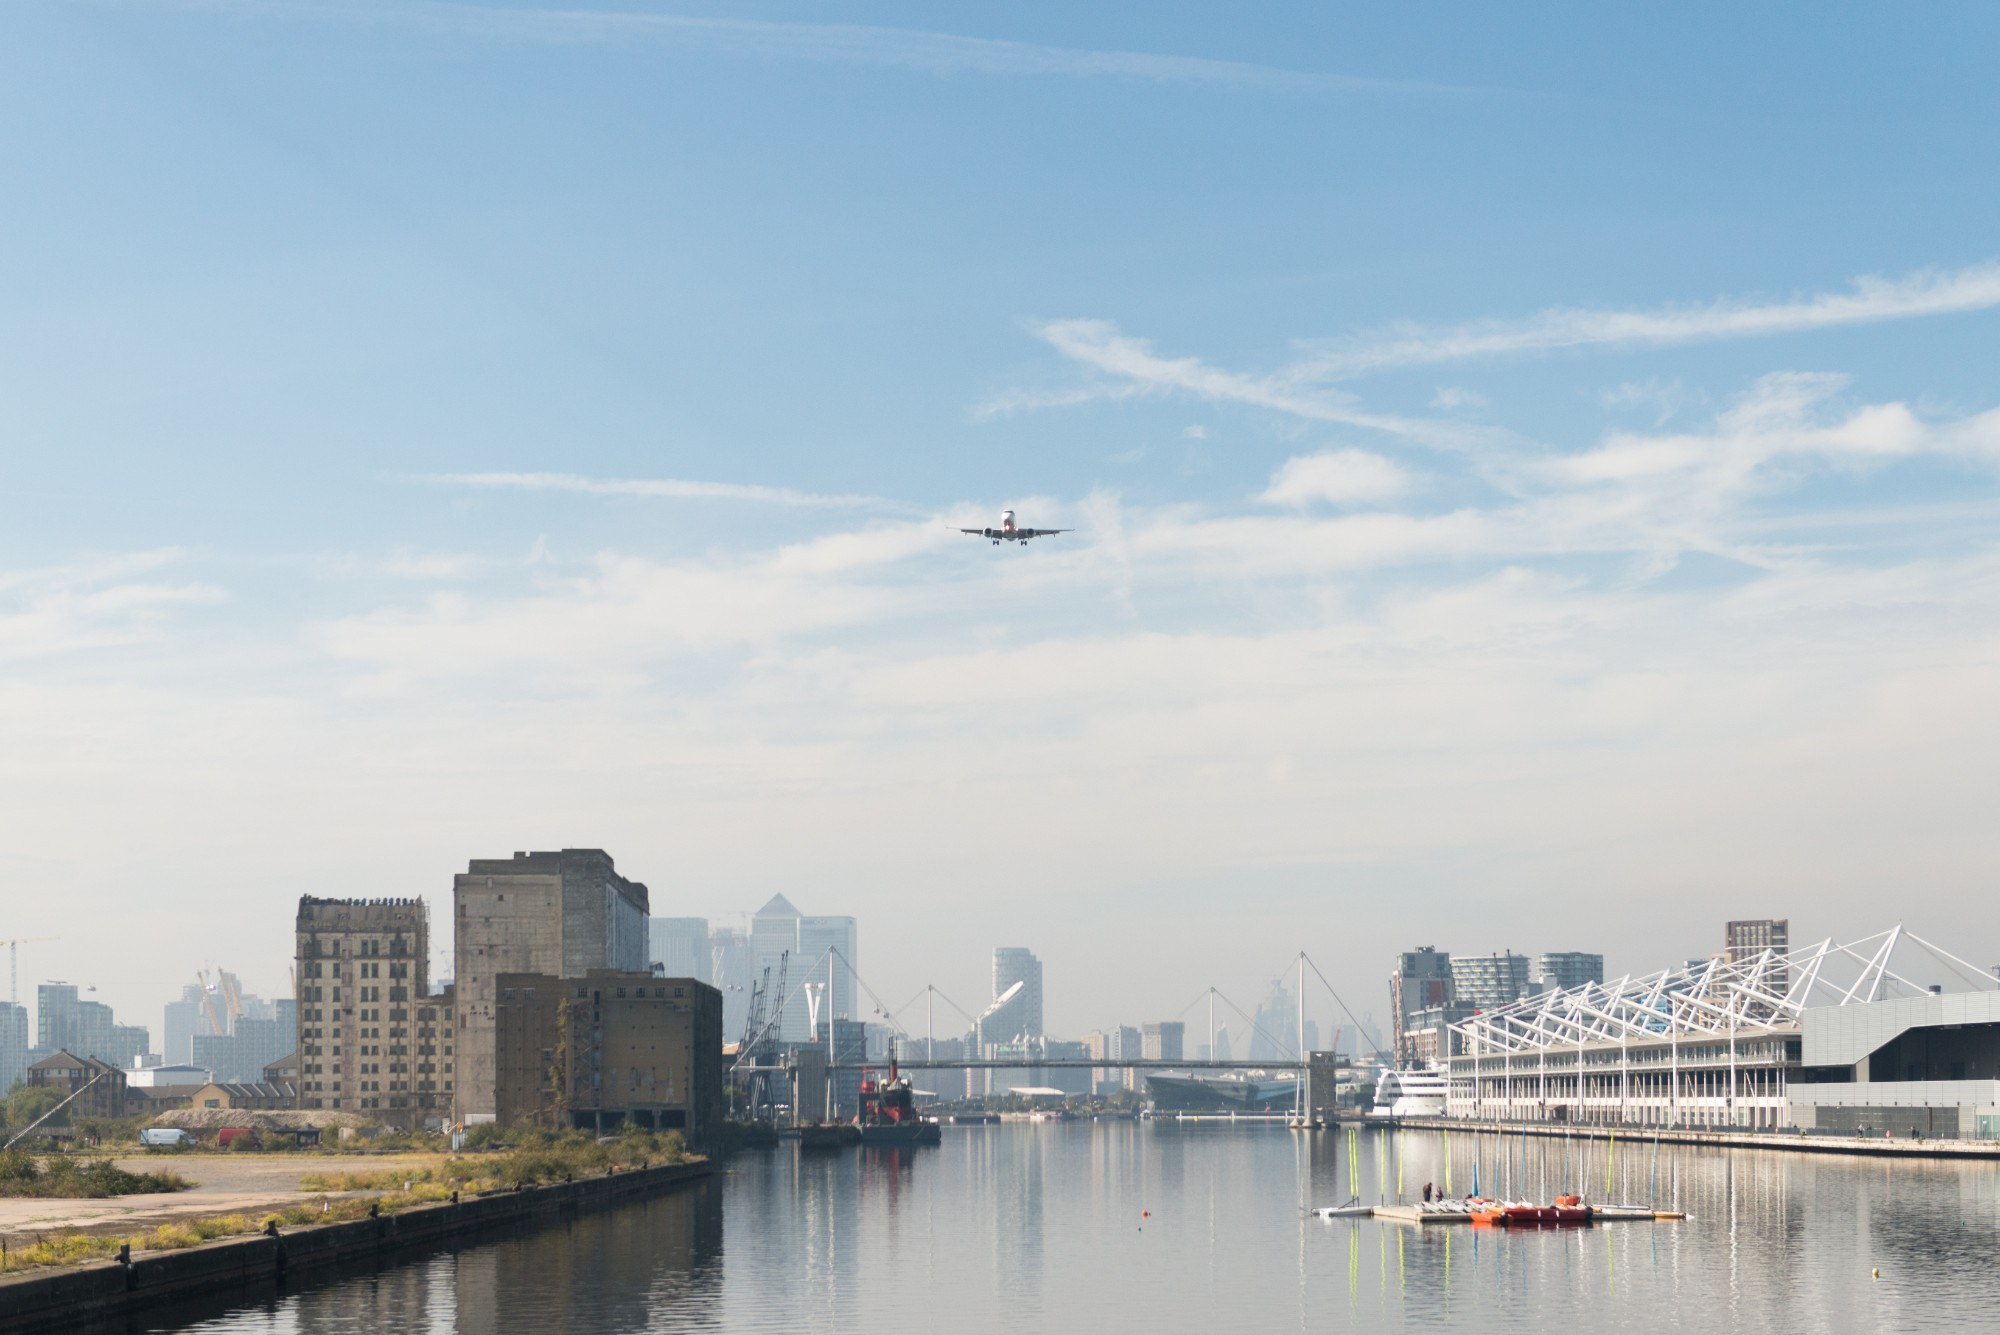 Plane in the sky having departed London City Airport with Canary Wharf in the background